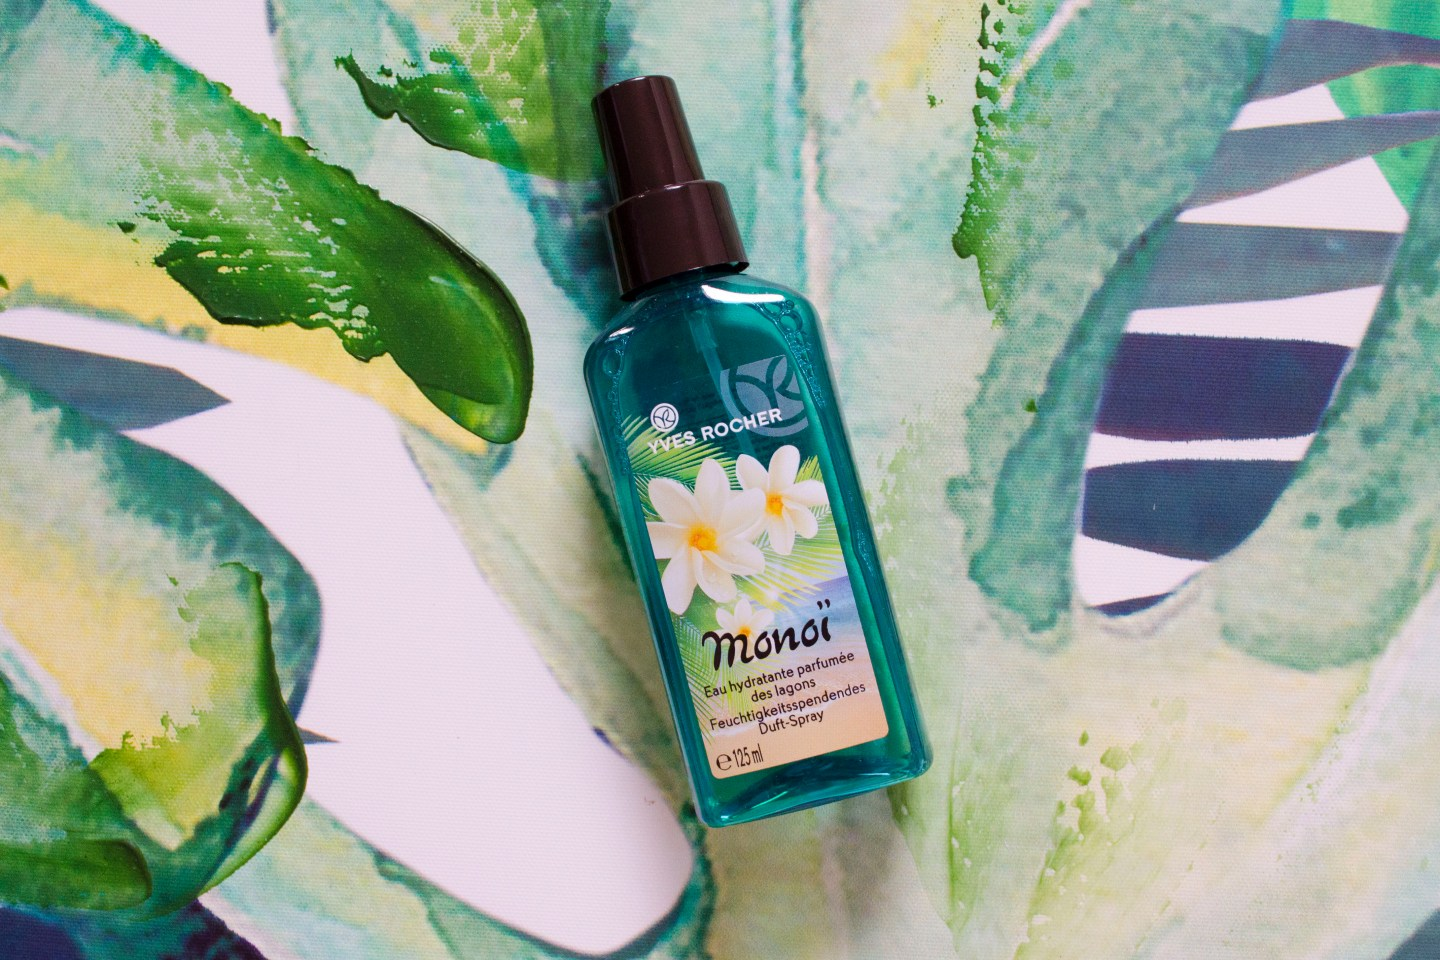 BEAUTY | CLOSE UP: Lagoon Moisturizing Perfumed Body Mist by Yves Rocher